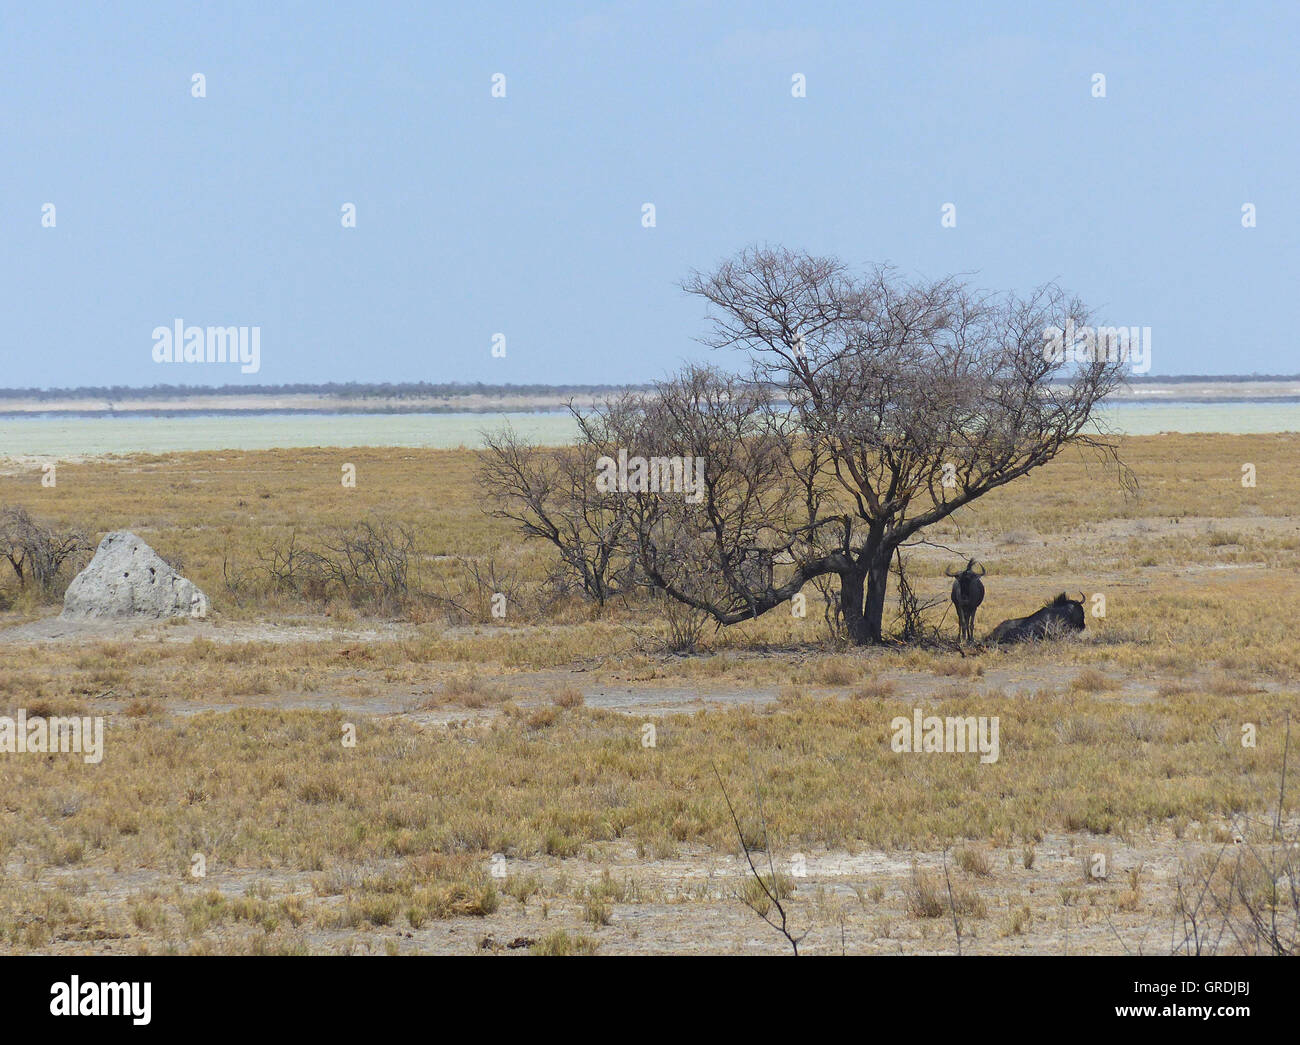 Wildebeest Under A Leafless Tree,Next To A Termite Mound,Namibia,At Horizon There Is A Mirage,Looks Like A Lake,But - Stock Image